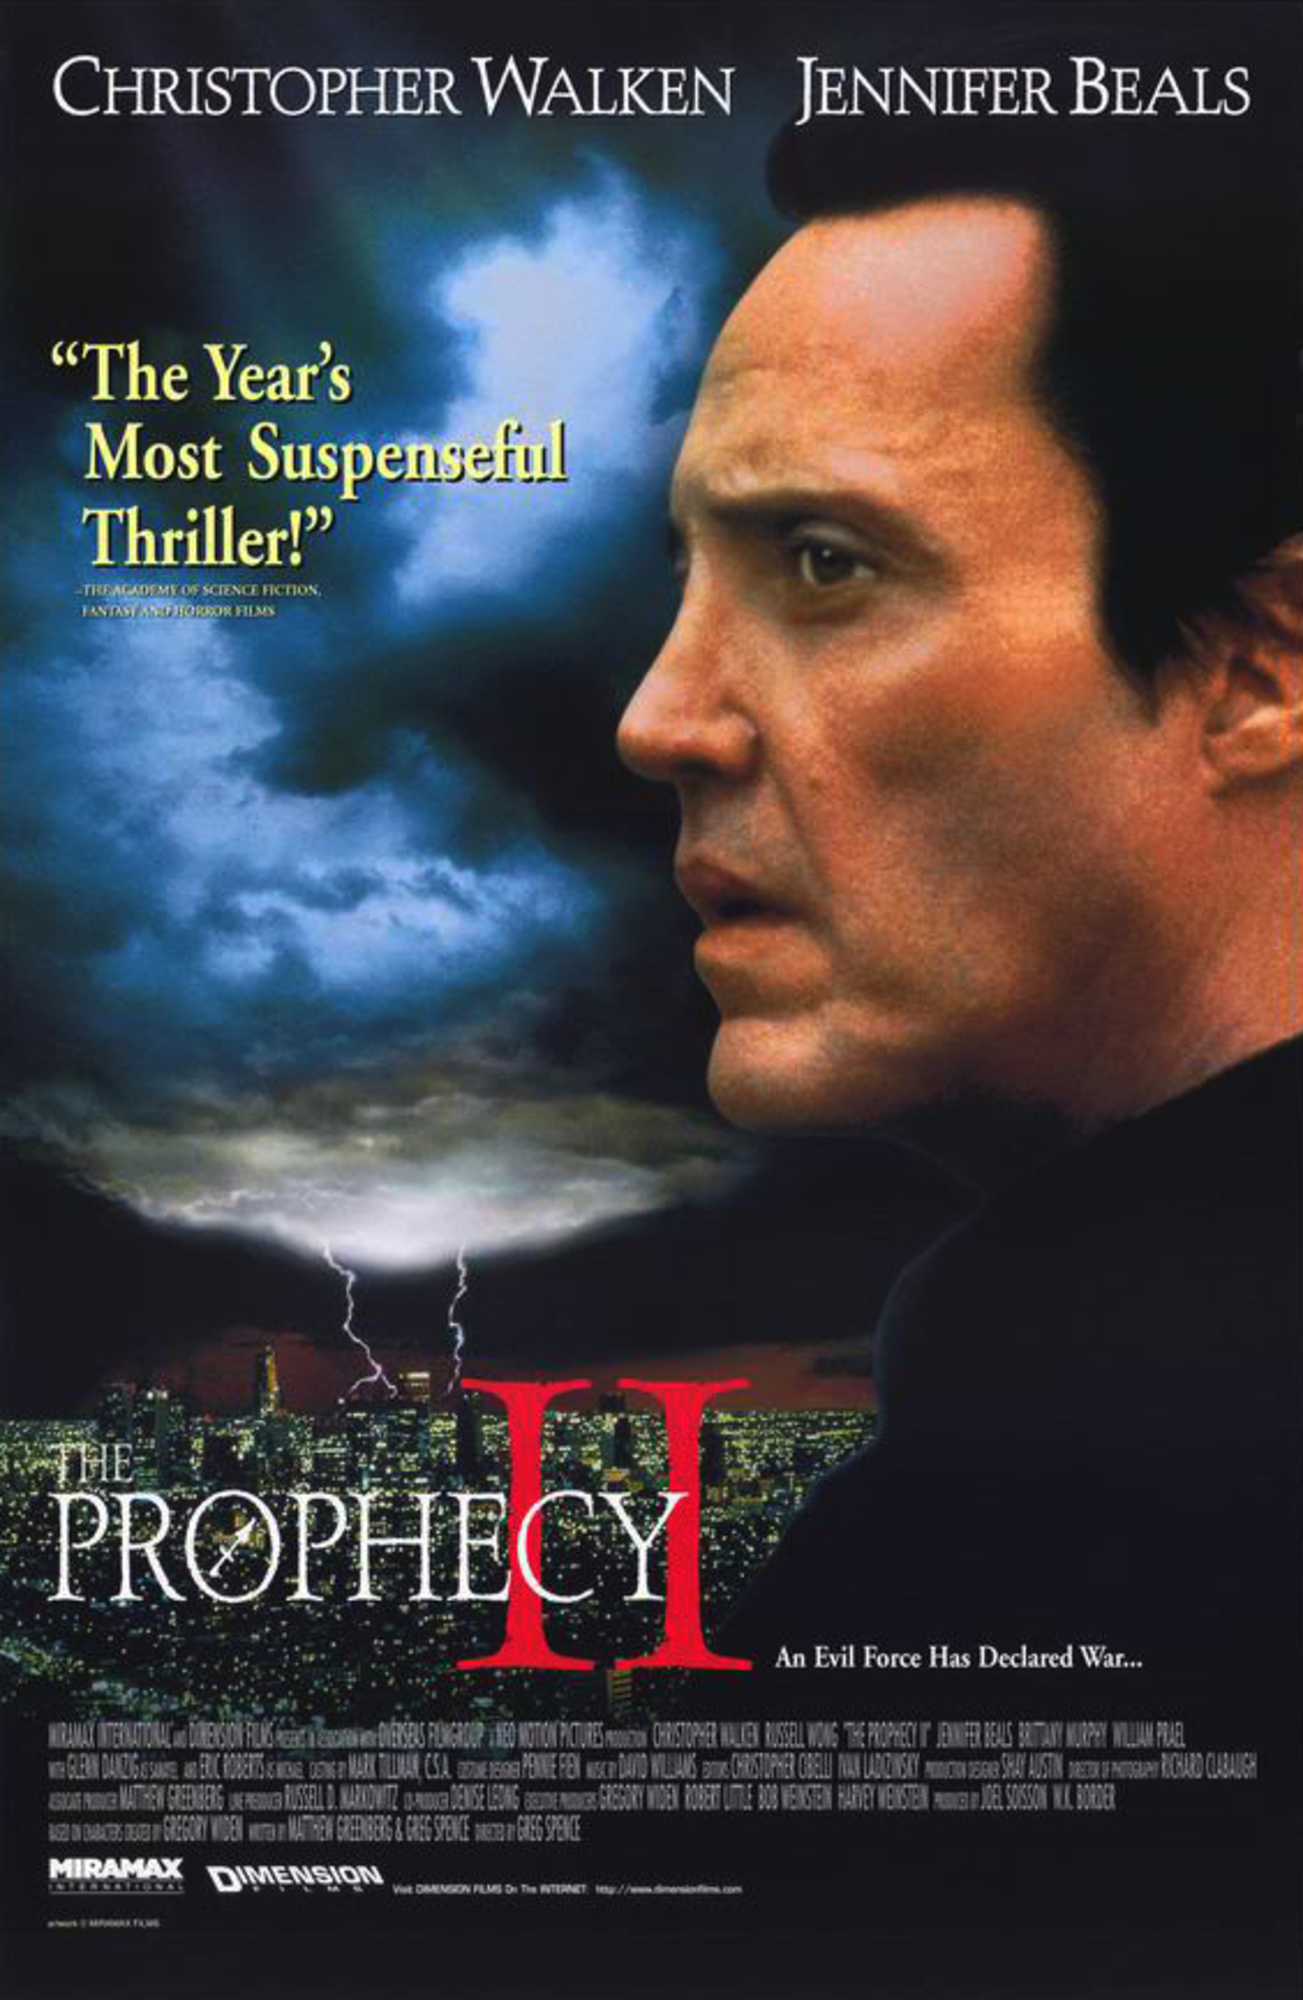 Affiche poster prophecy 2 disney dimension